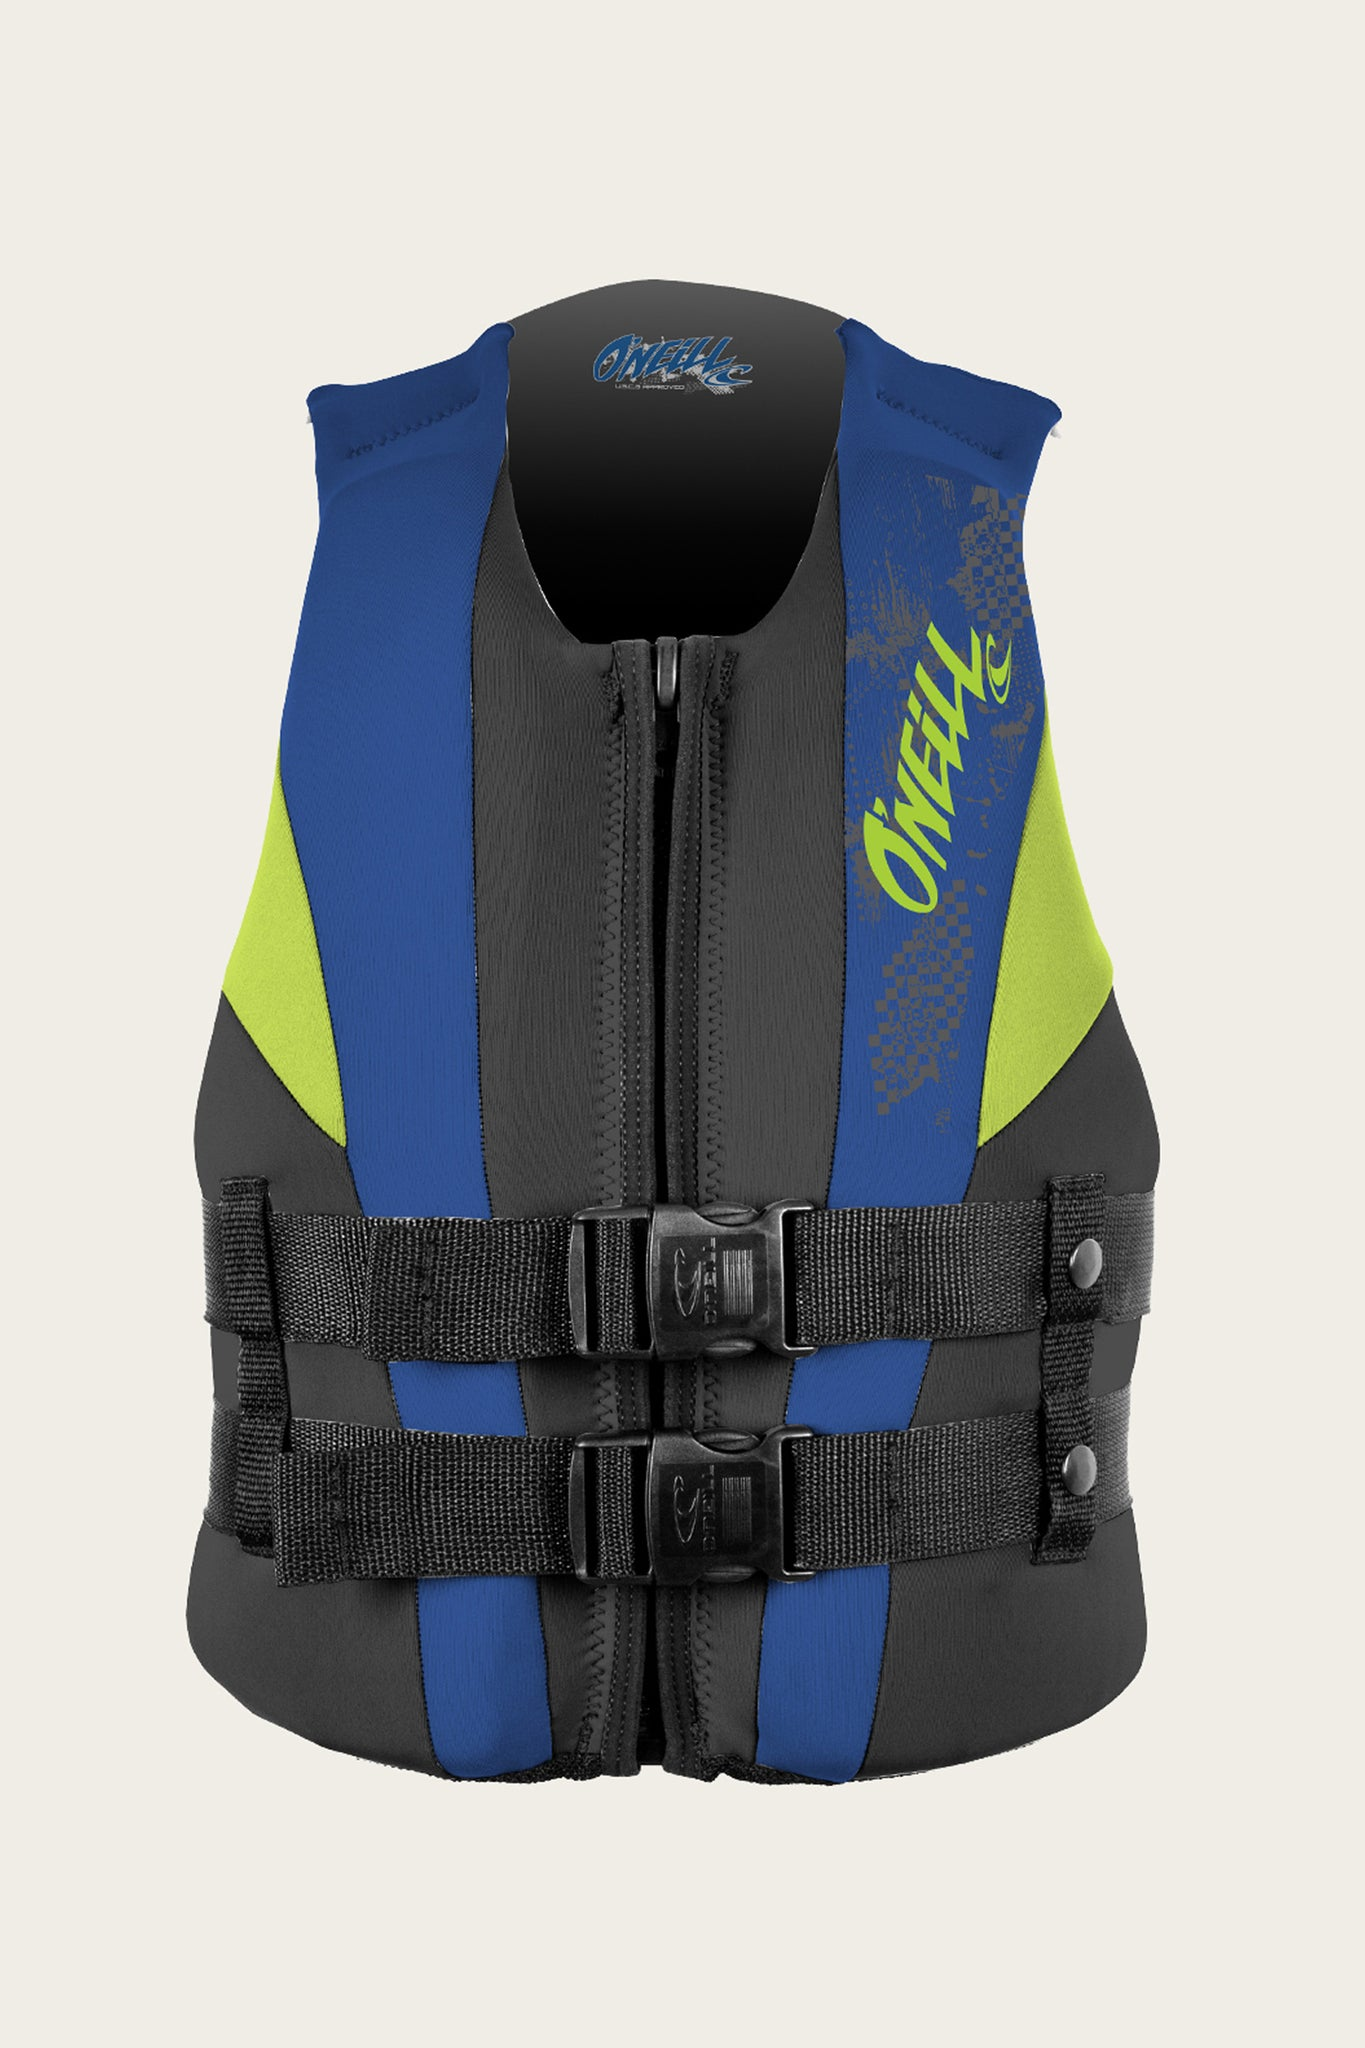 Youth Reactor Uscg Vest - Blk/Pac/Dayglo | O'Neill